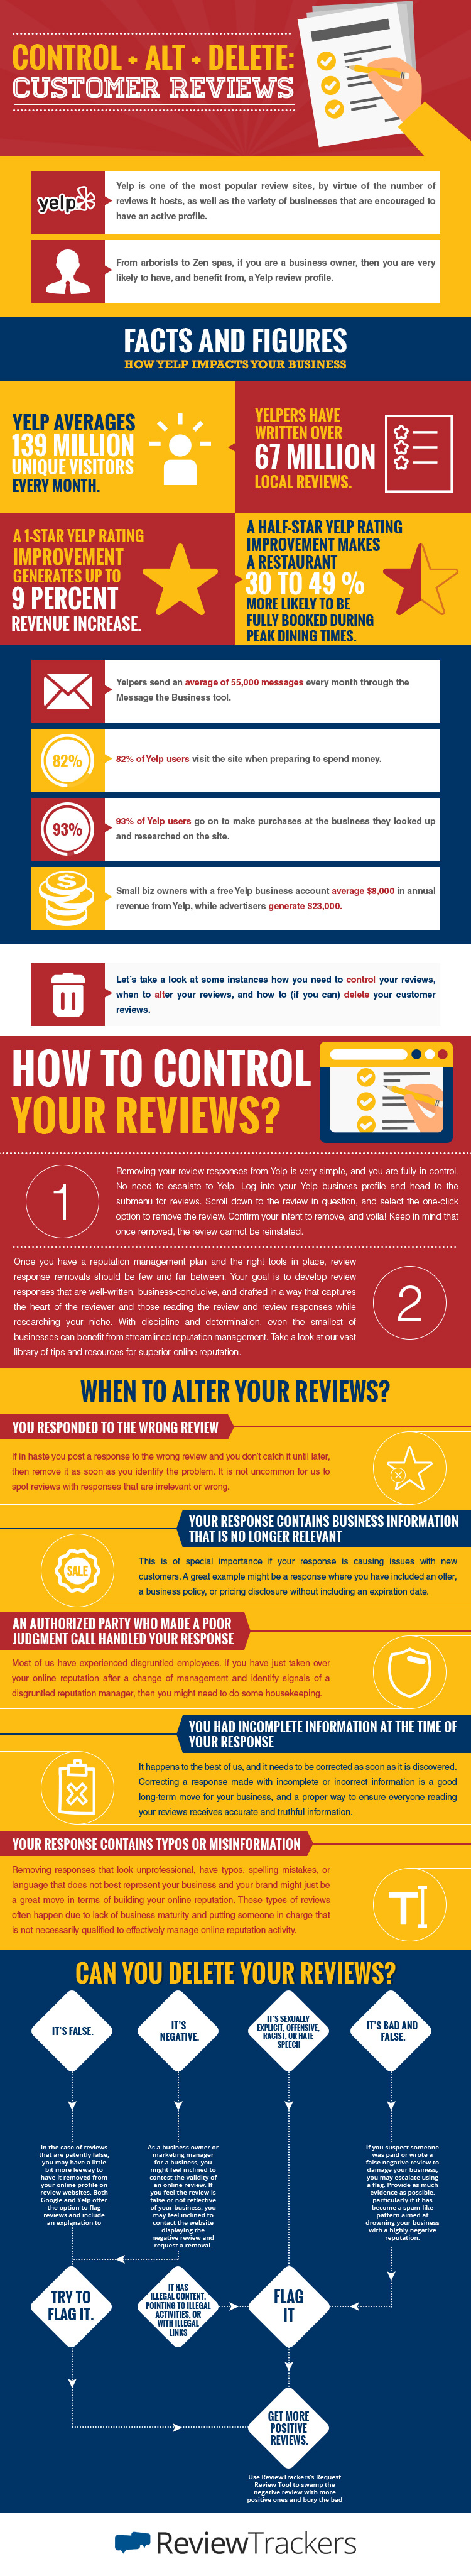 How to Control Alt Delete Online Reviews Infographic